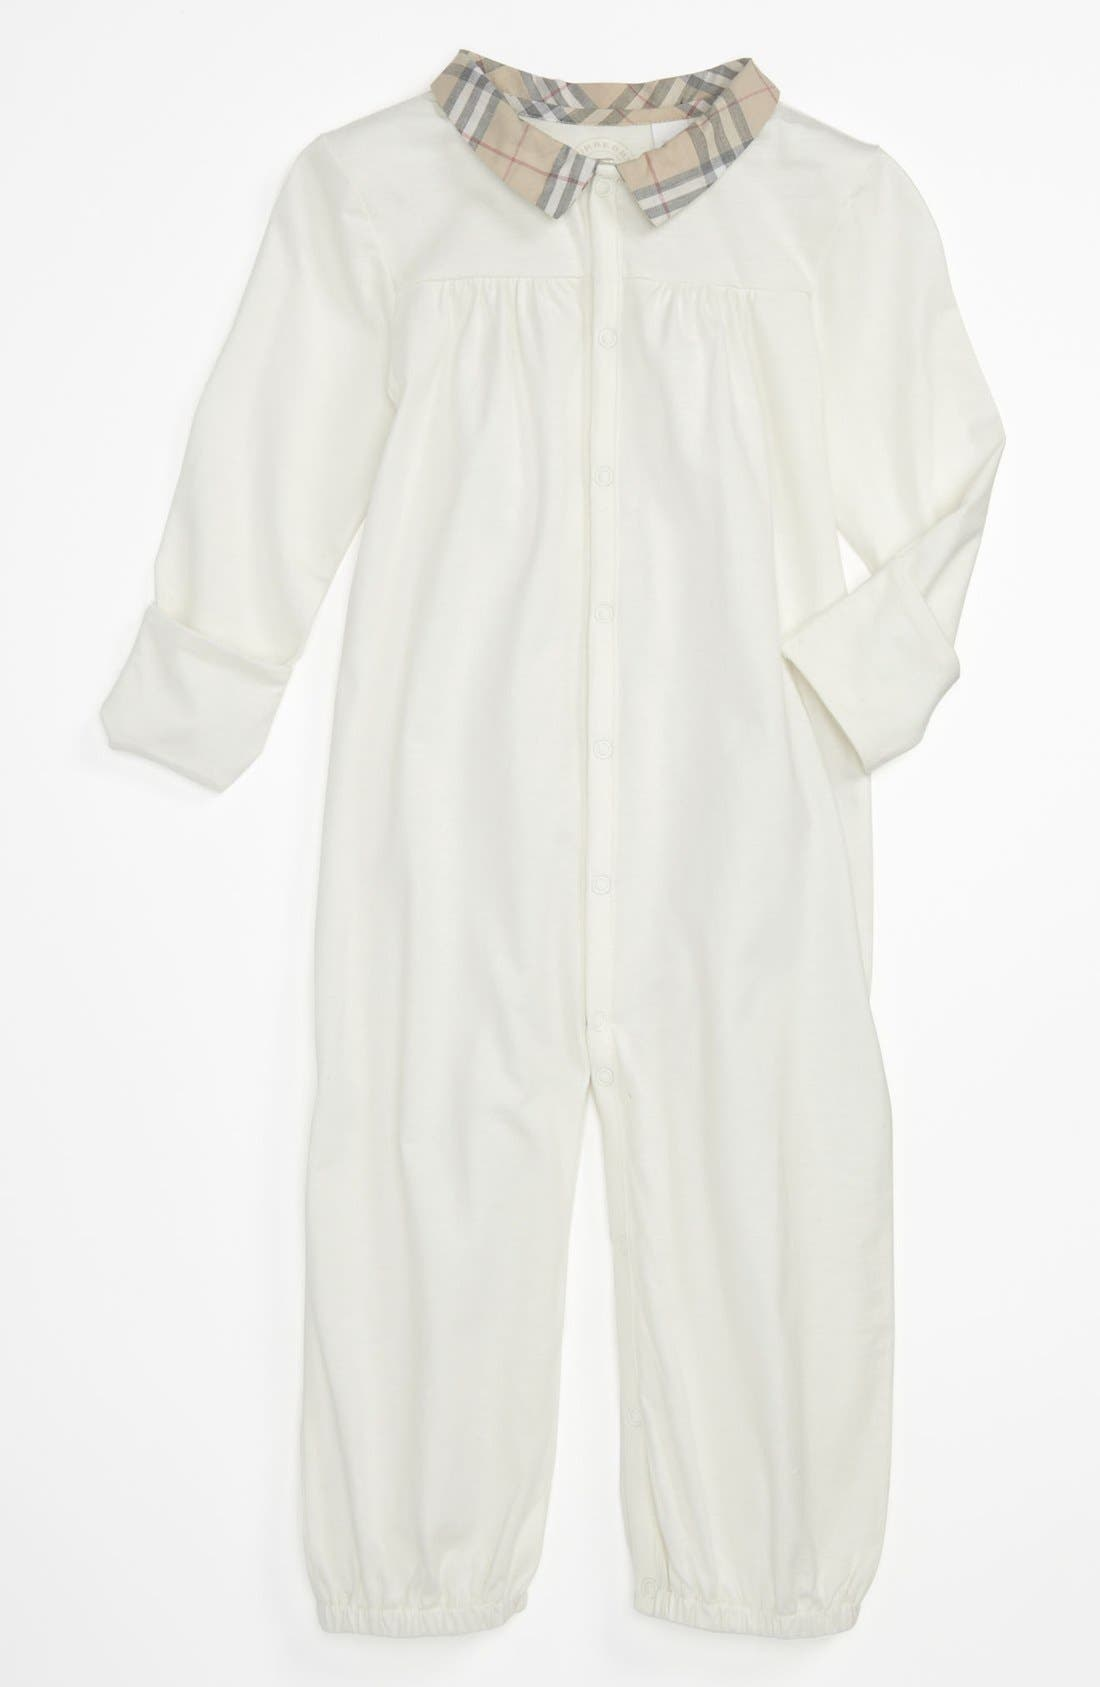 Main Image - Burberry Convertible Gown (Baby)